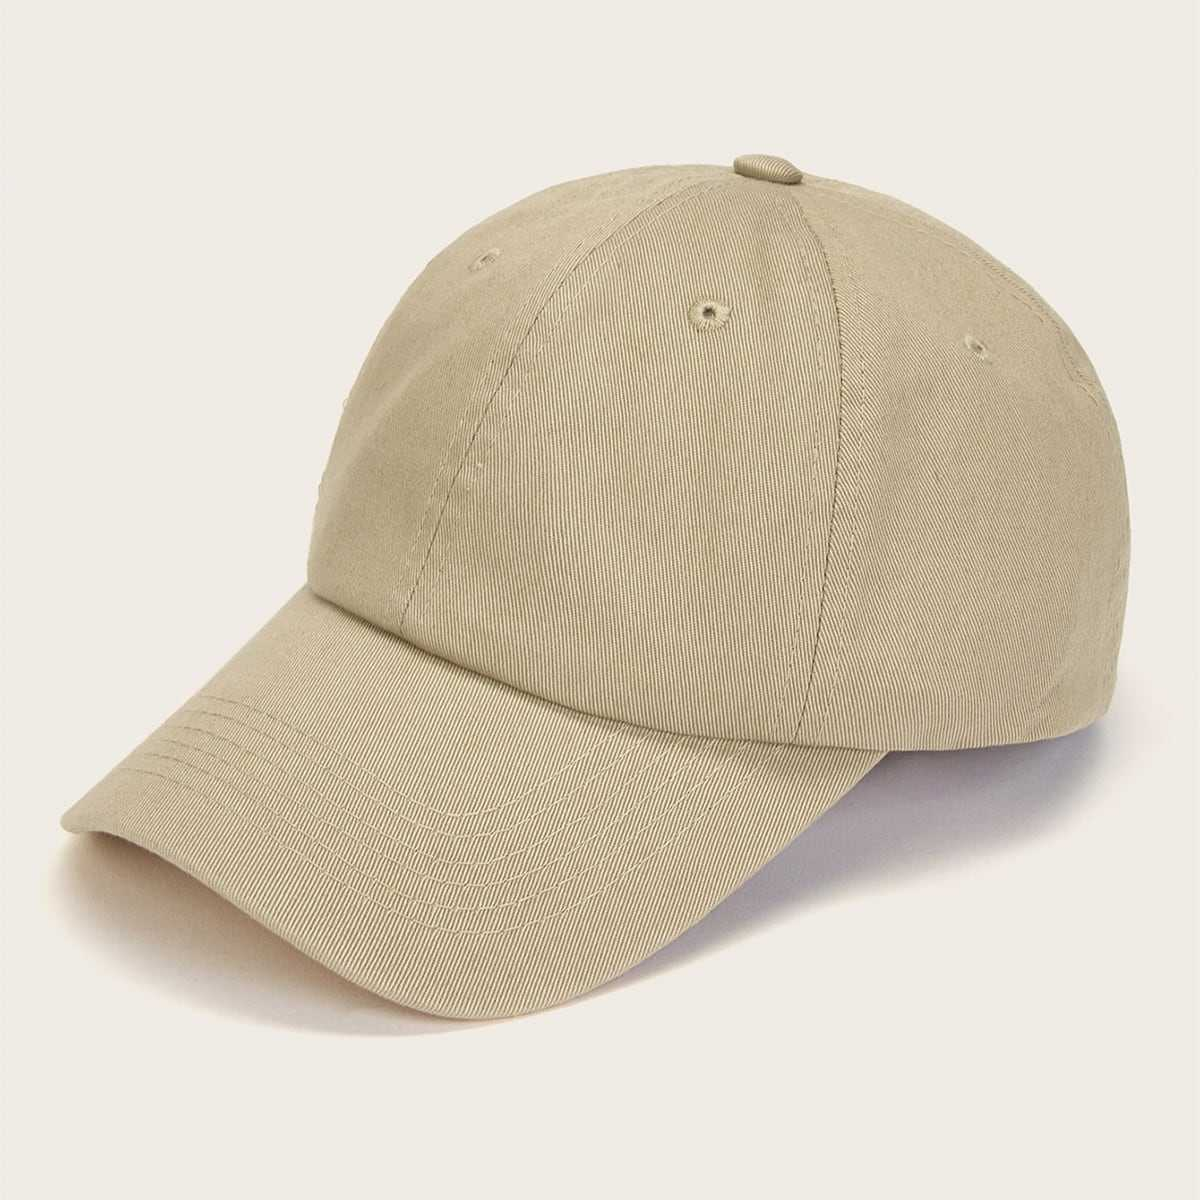 Guys Plain Baseball Cap in Khaki by ROMWE on GOOFASH